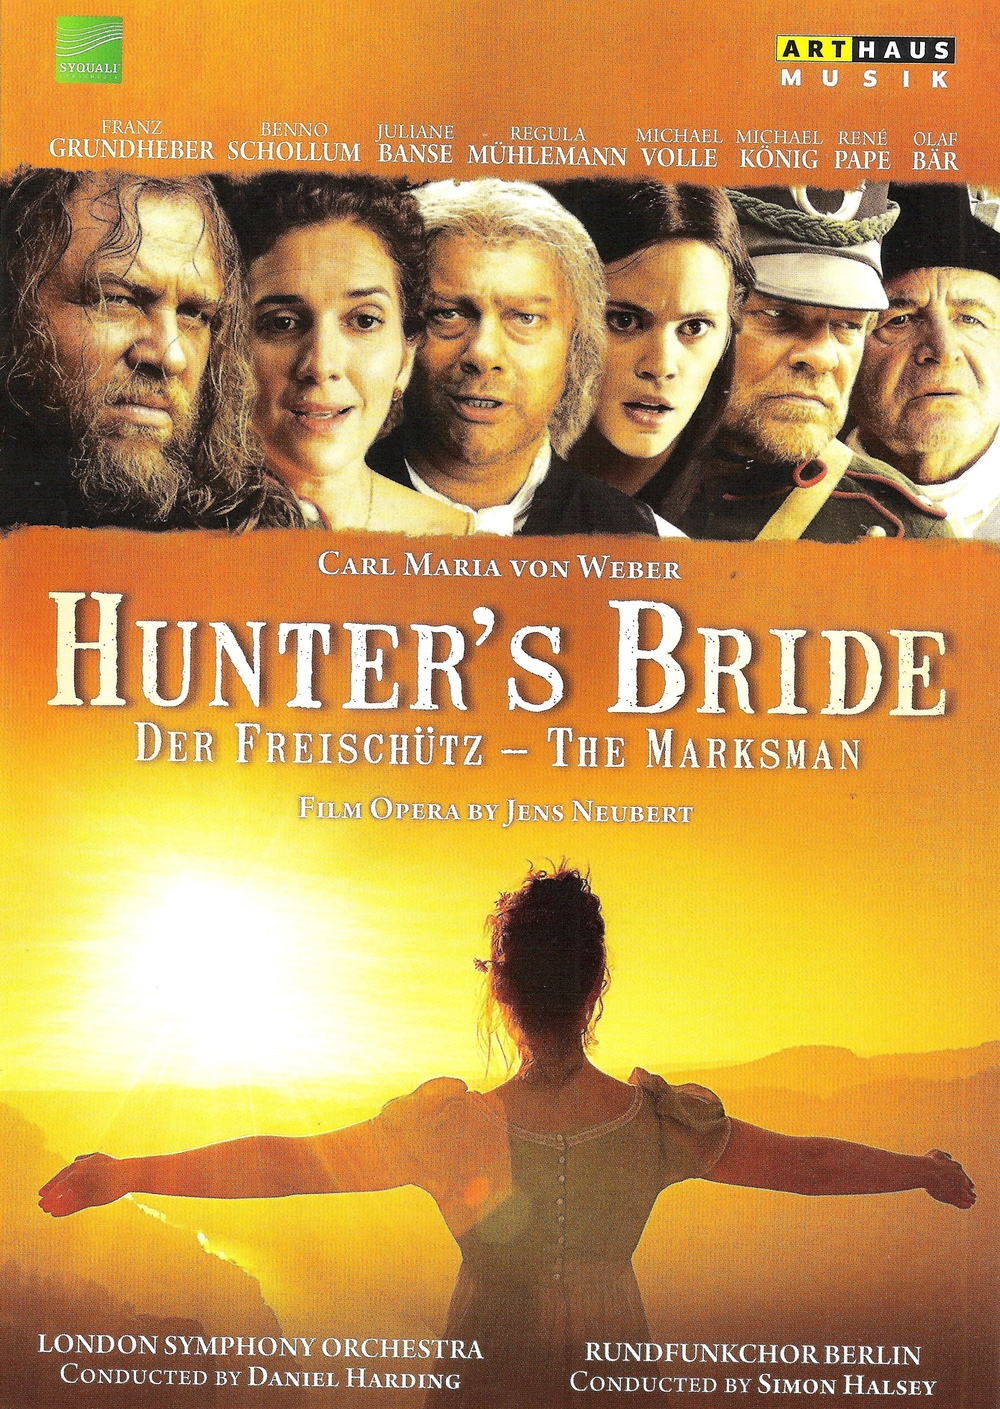 The Hunter's Bride, Der Freischütz on film.